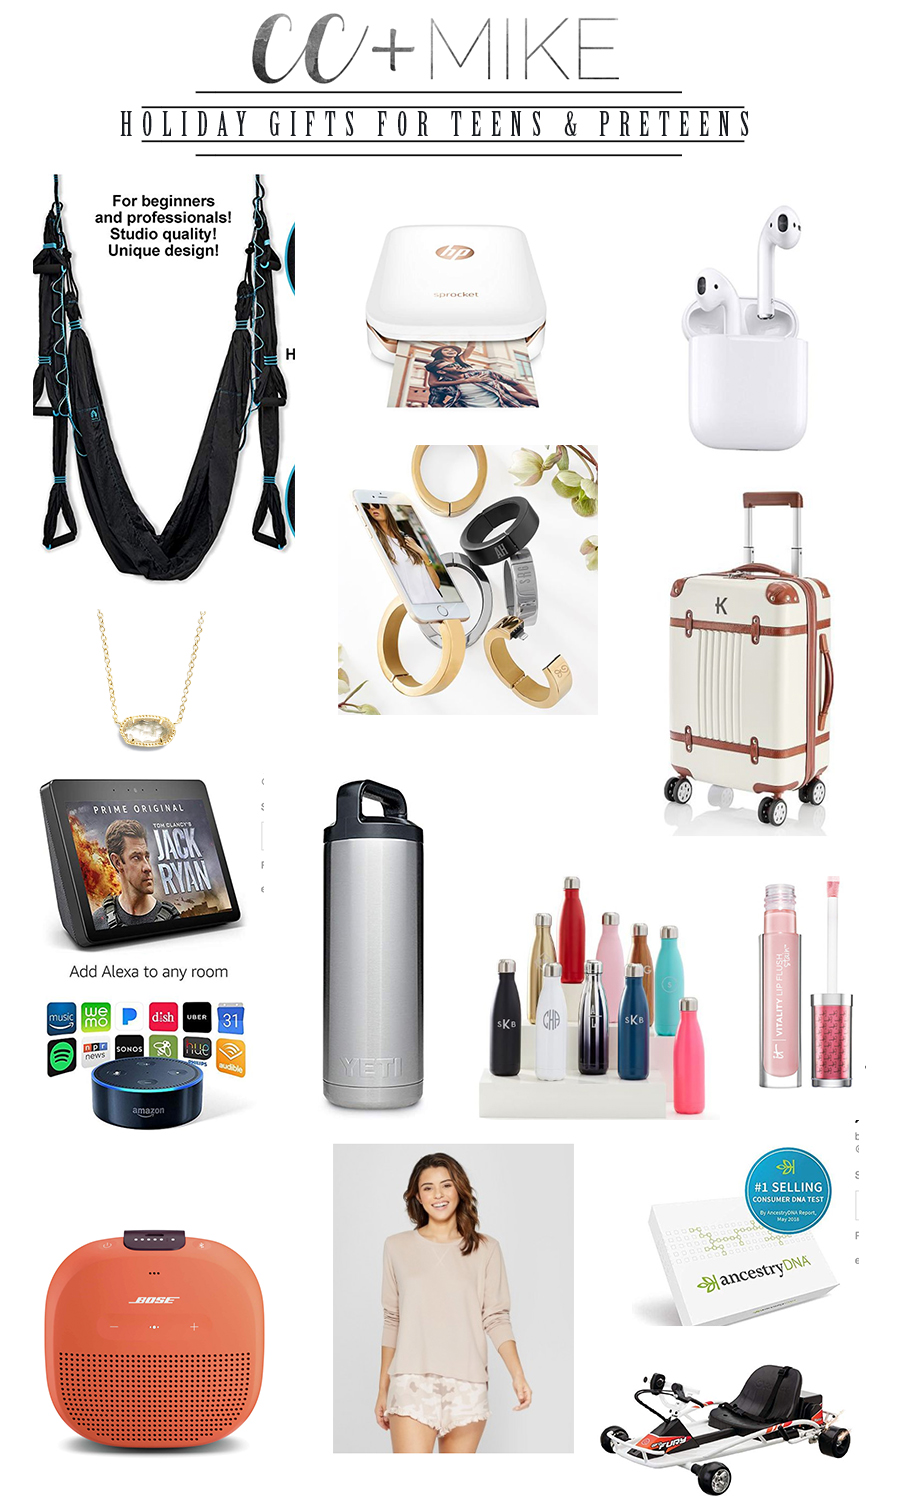 CC and Mike Holiday Gift Guide best christmas gifts for teens and preteens alexa show personalized luggage yeti tumbler best gifts for teenagers